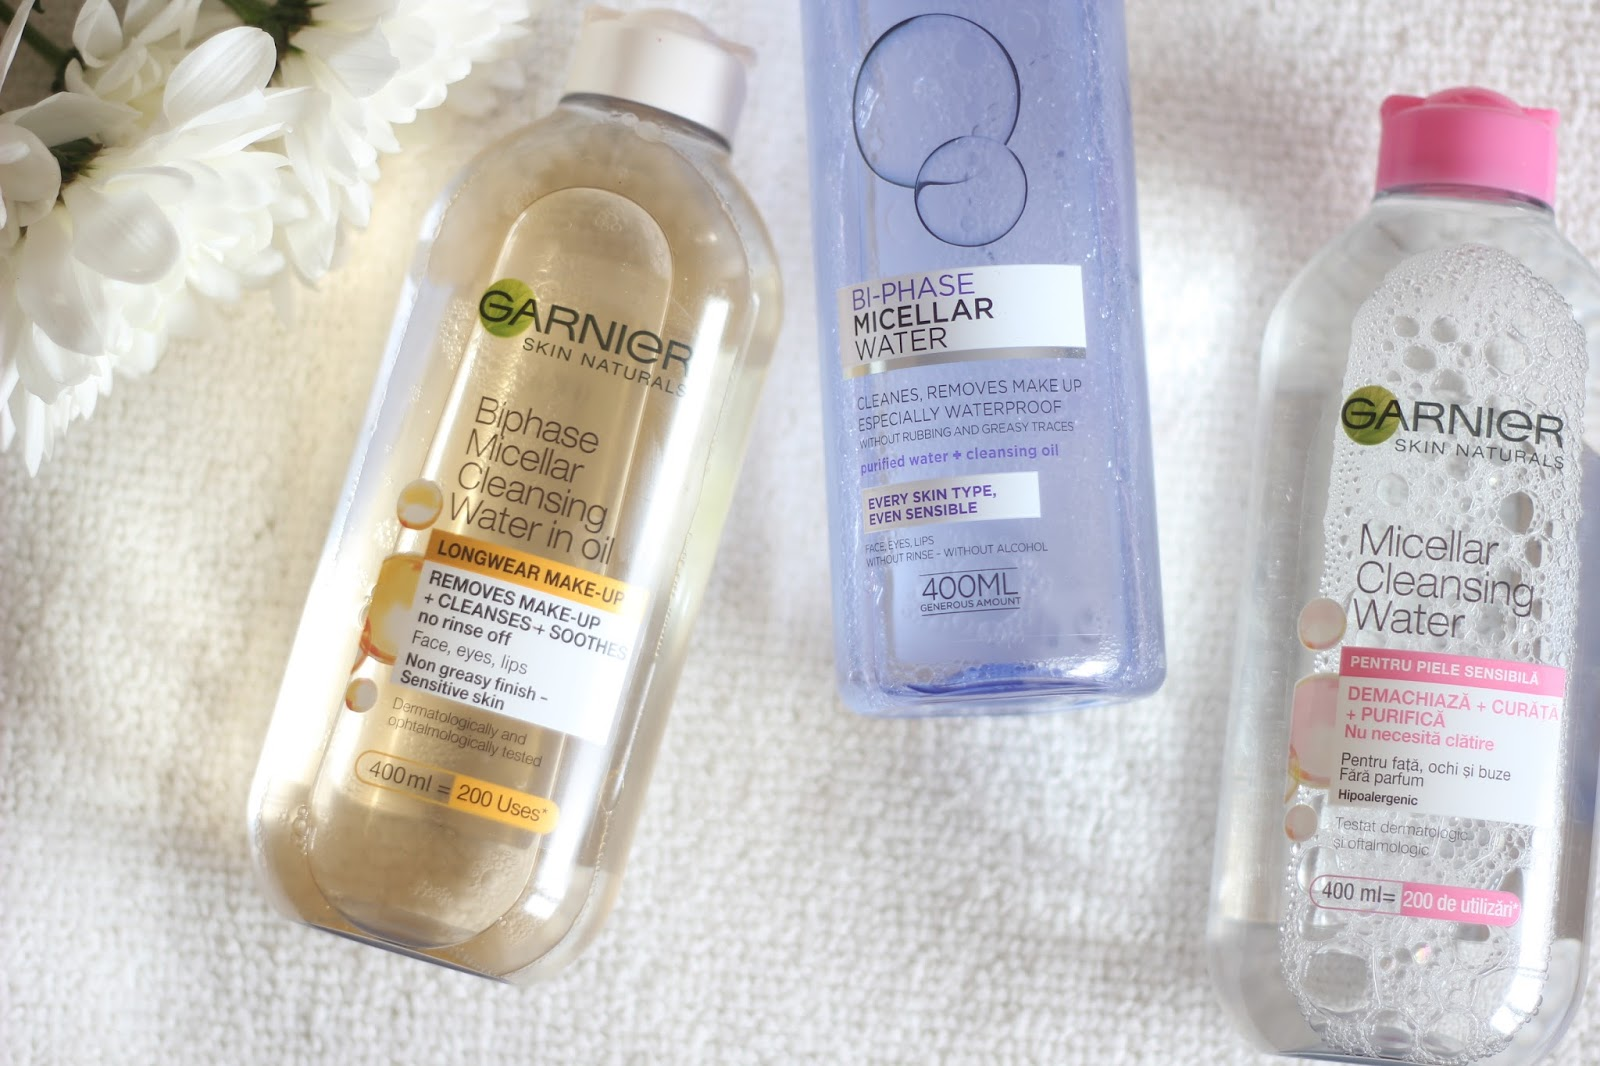 What Are Micellar Waters Why They So Good At Removing Dirt L Oreal Makeup Water 250ml Blue Being A Girl That Never Really Got On With Tonic I Looked These Much Interest Saw Were Gaining